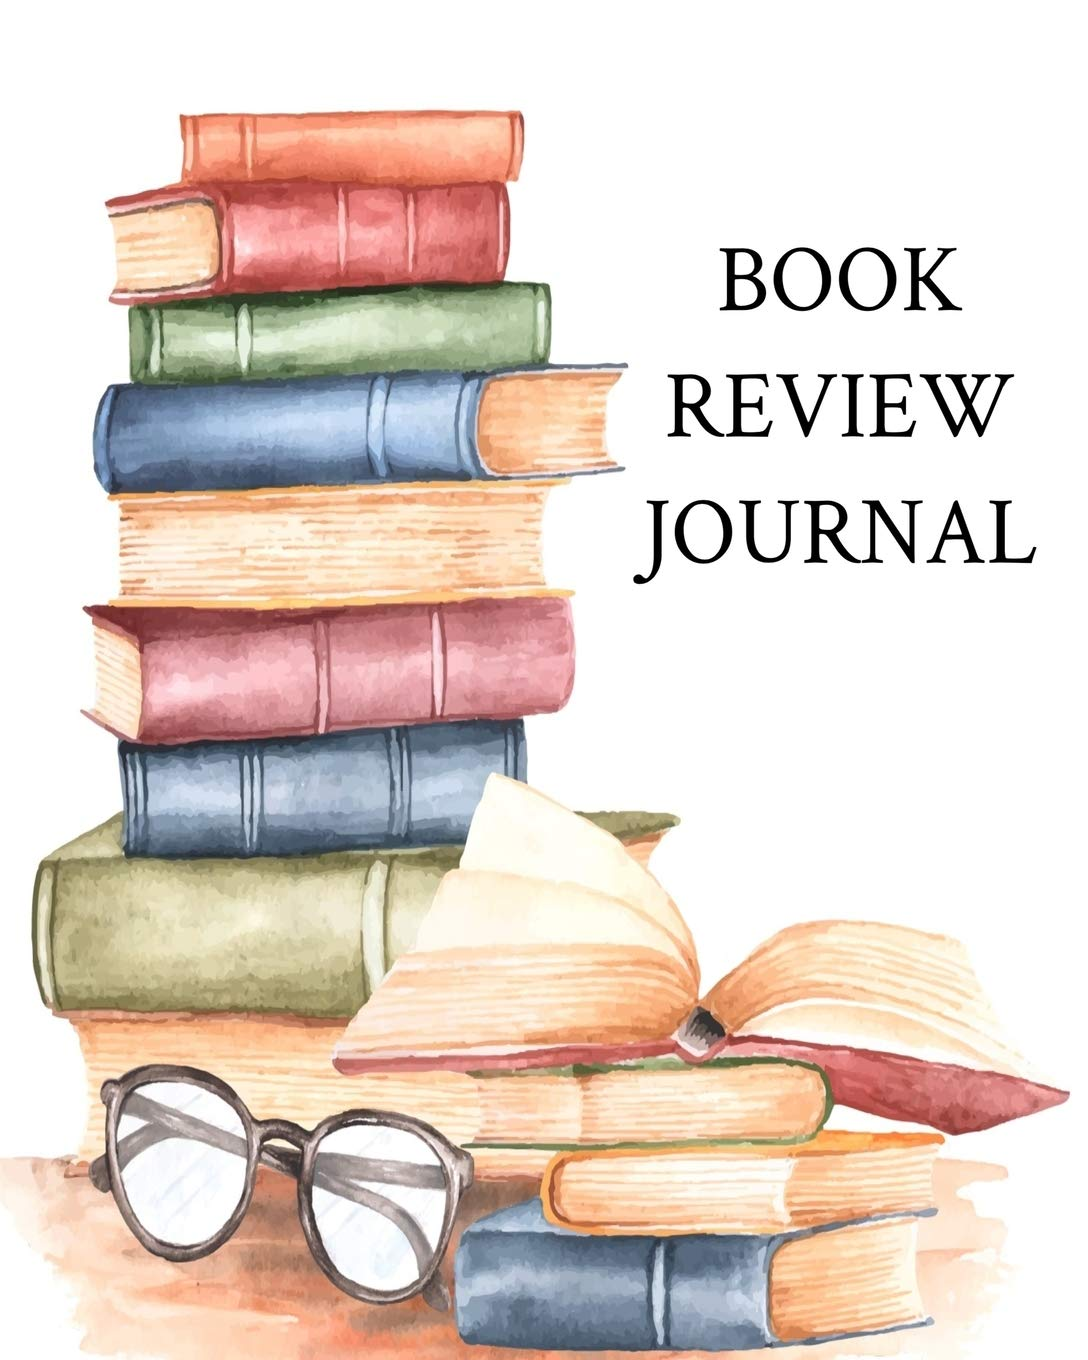 Book Review Journal: Reading Log | Gift For Readers, Book Lovers, Book  Clubs | BONUS FICTION PAGES: Journals, Smart LifeStyle: 9781708377021:  Amazon.com: Books